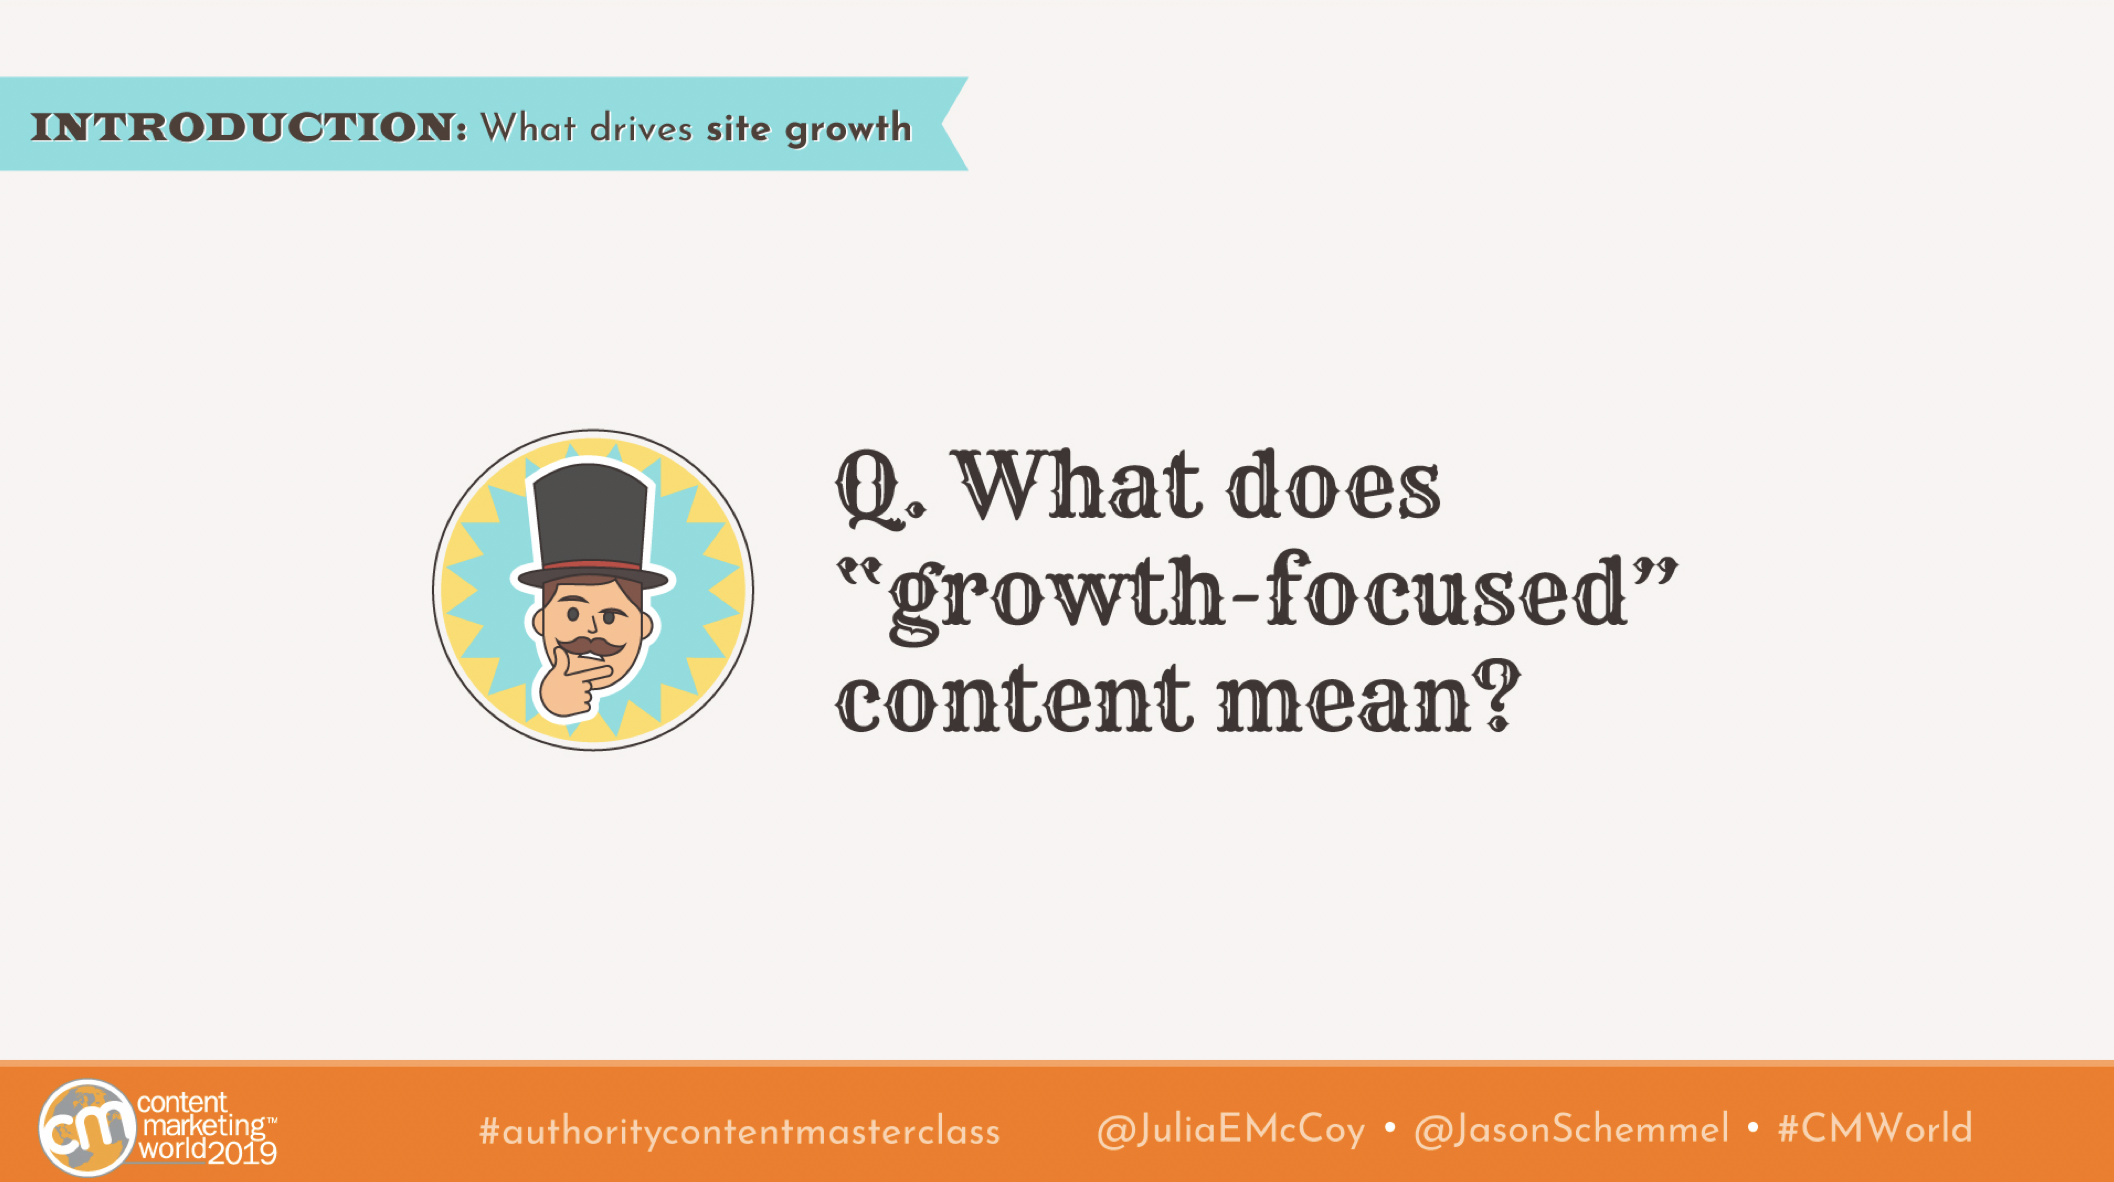 growth focused content